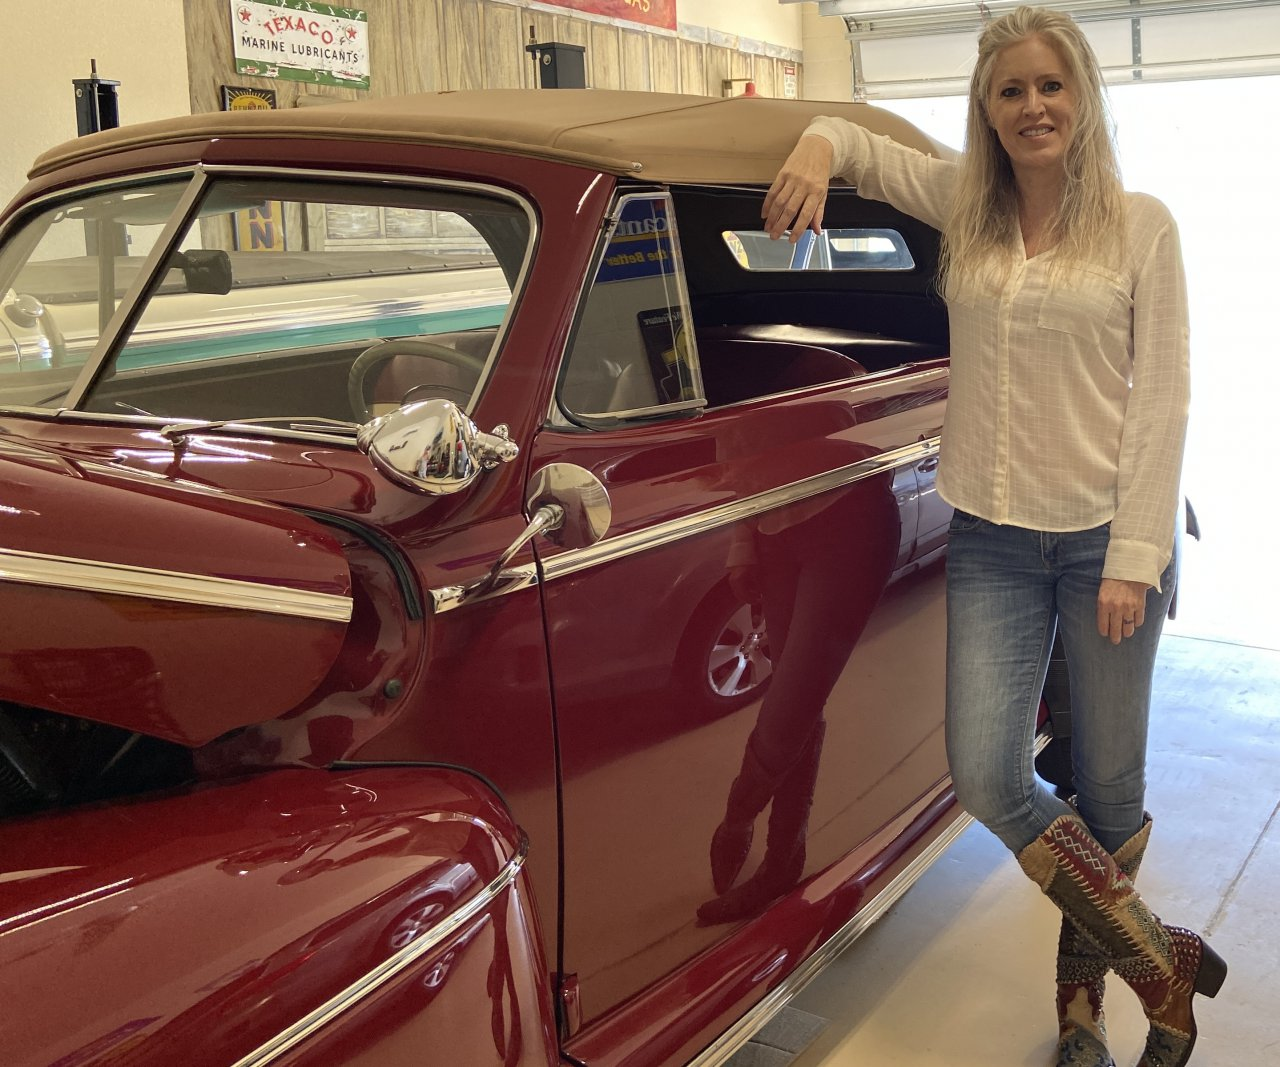 Brooks, The story behind 'Surprise Peanut,' a gift for a former president and first lady, ClassicCars.com Journal